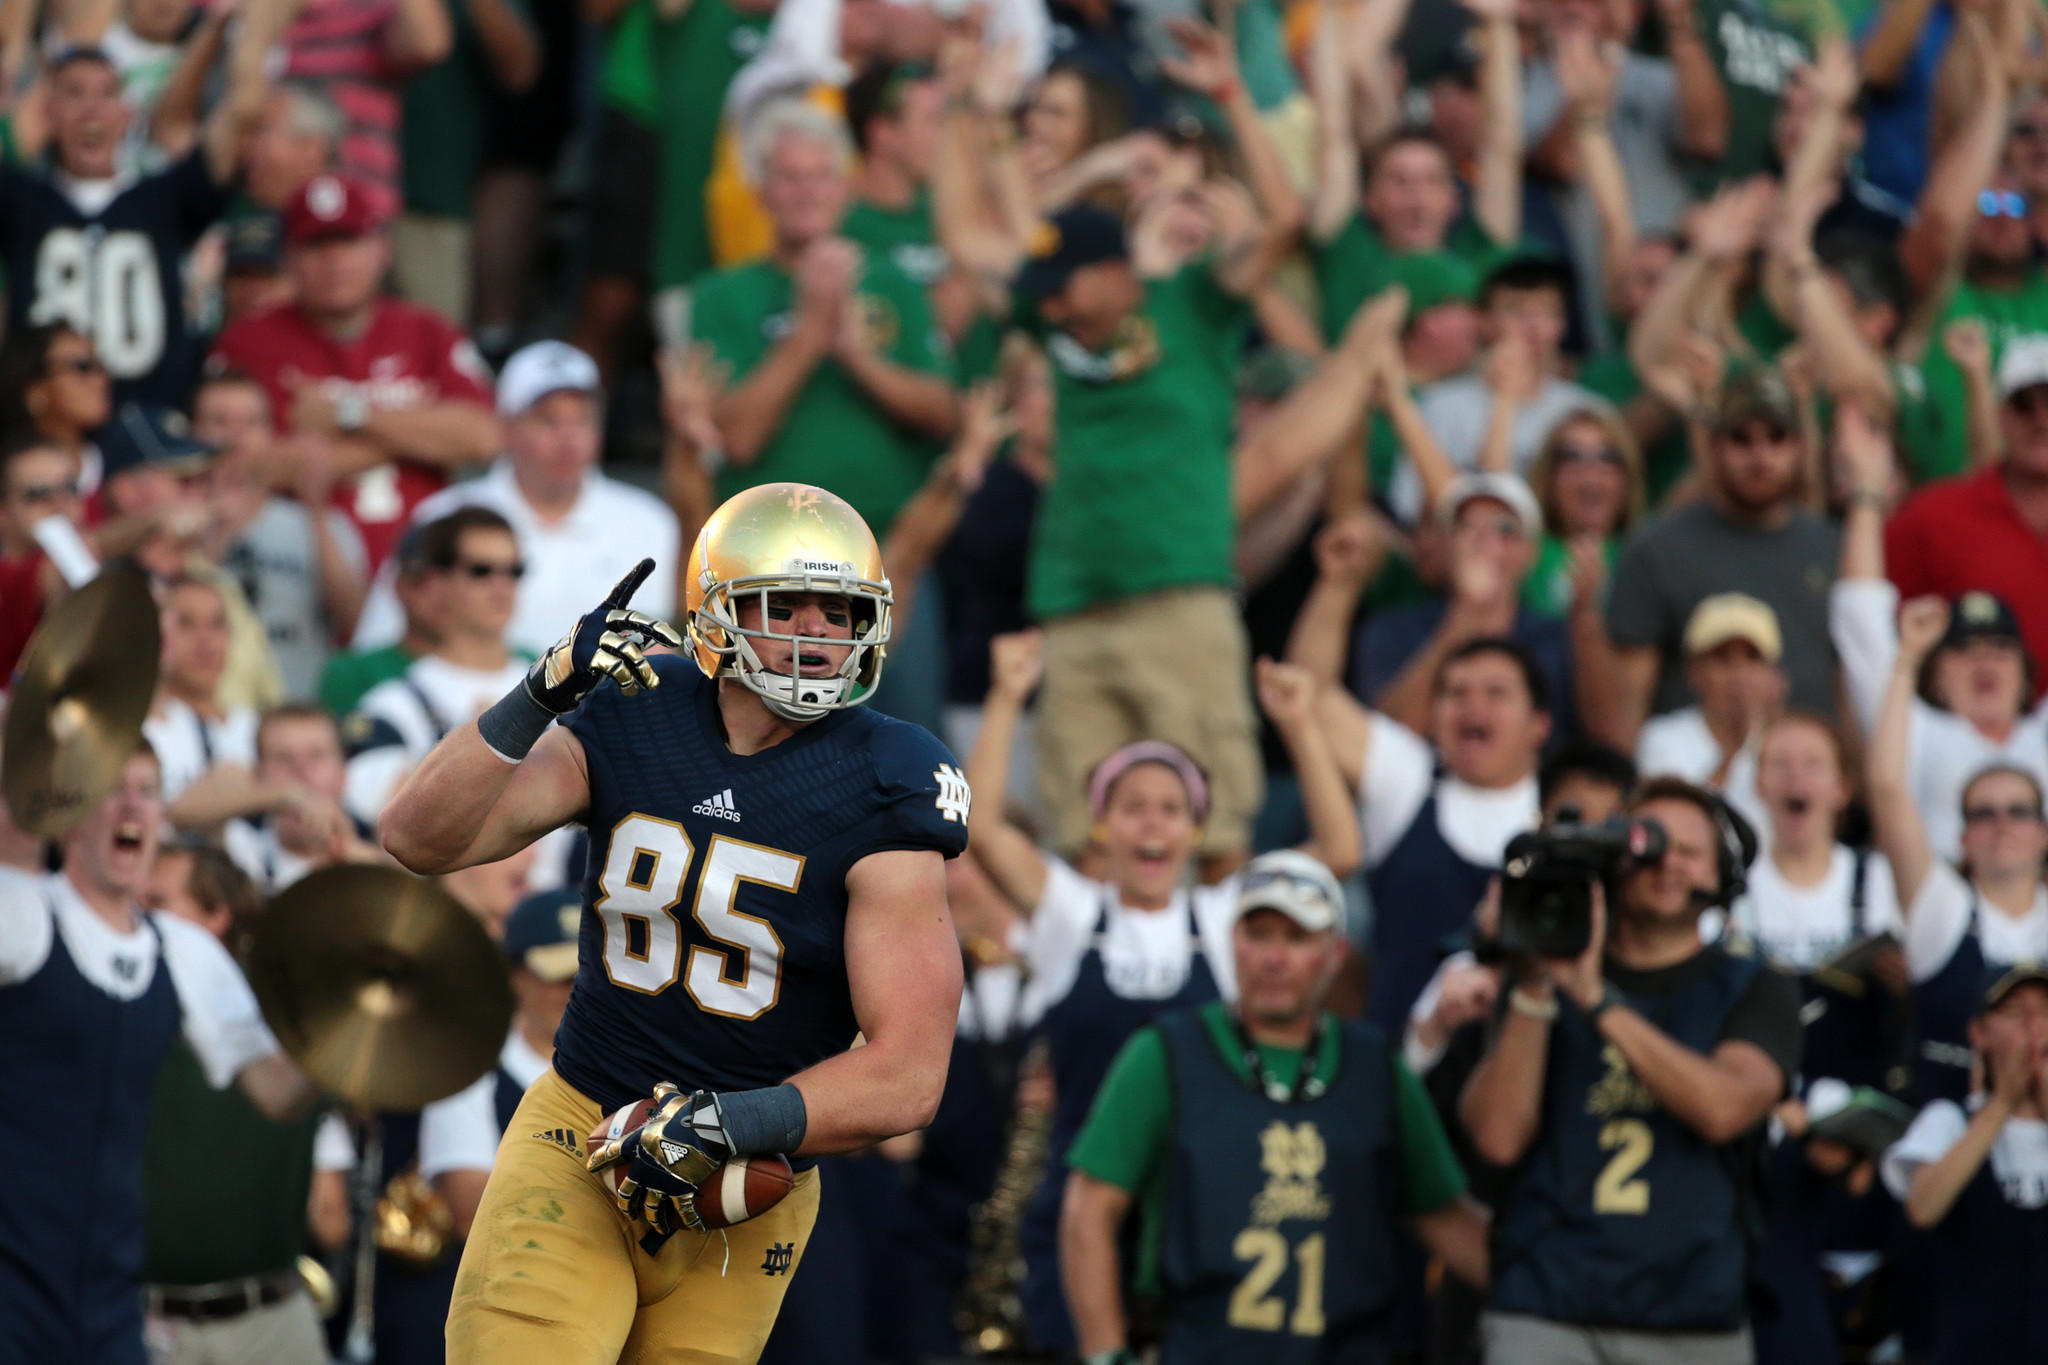 Notre Dame tight end Troy Niklas celebrates after scoring a touchdown during the second half.